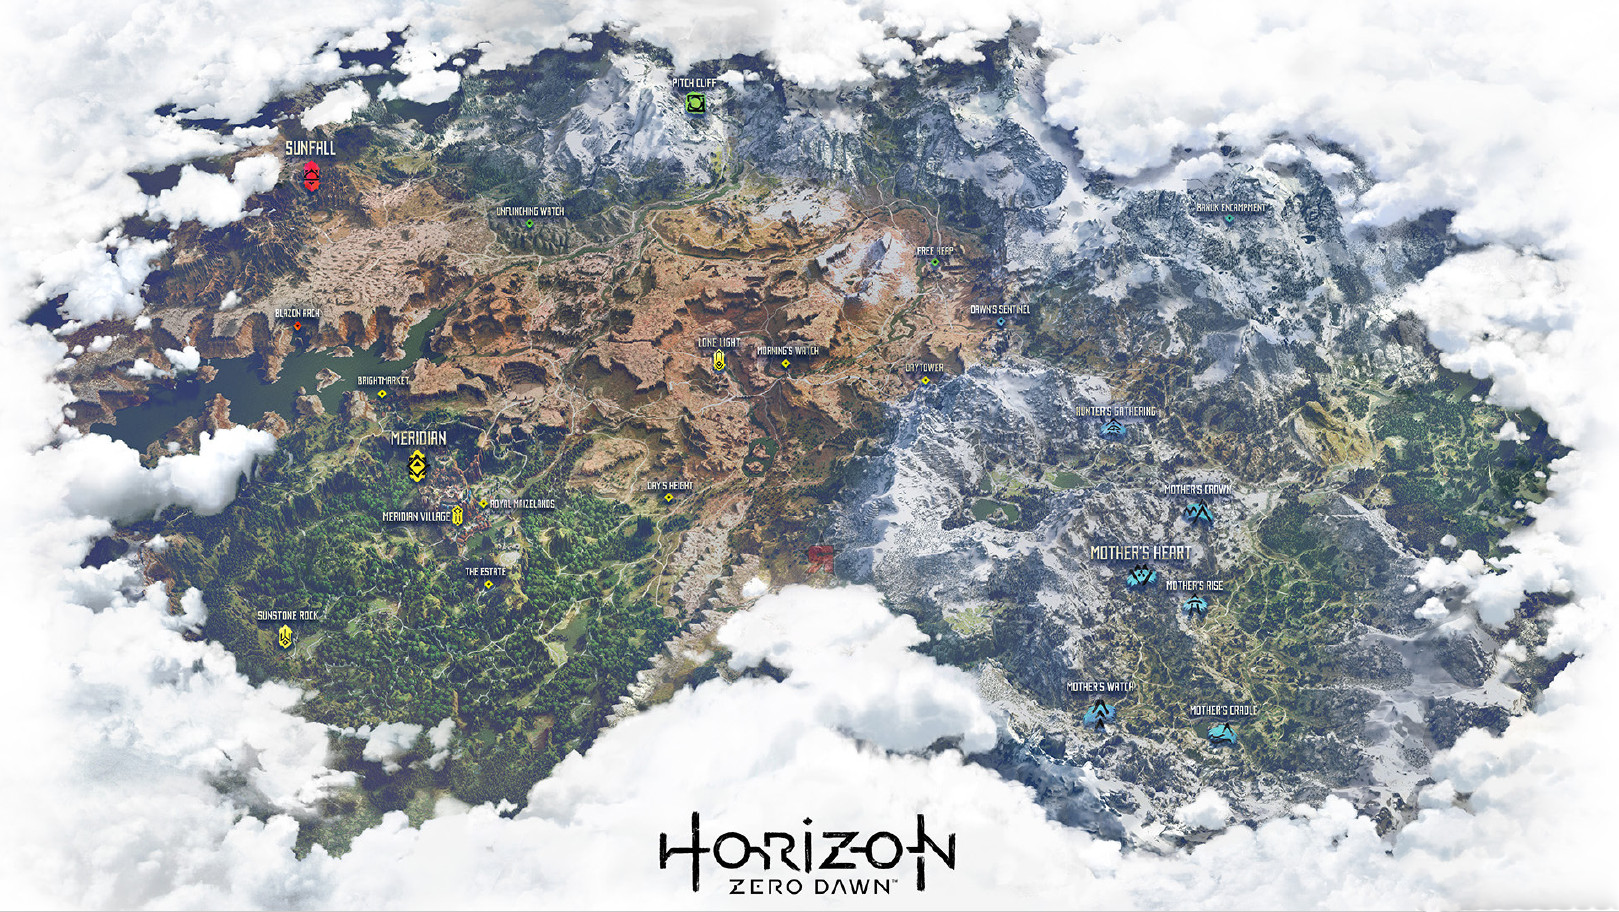 Horizon Zero Dawn Karte.World Horizon Zero Dawn Wiki Fandom Powered By Wikia